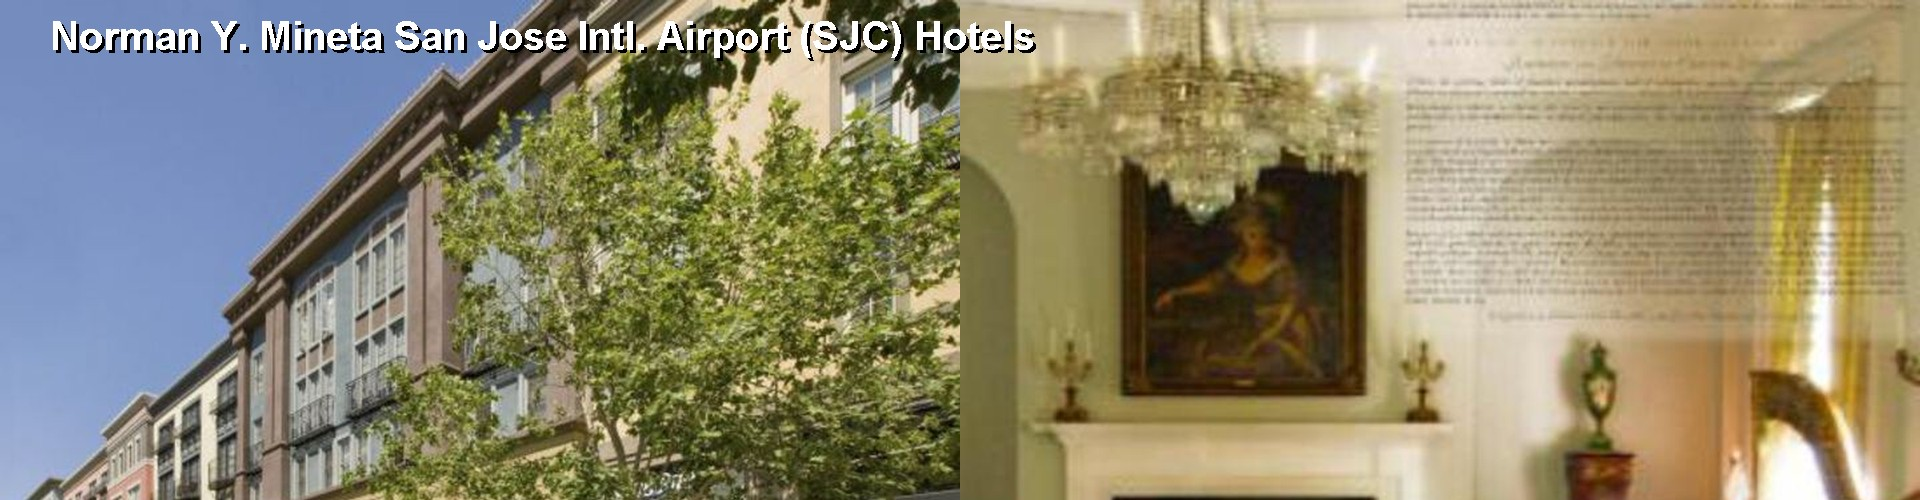 5 Best Hotels near Norman Y. Mineta San Jose Intl. Airport (SJC)